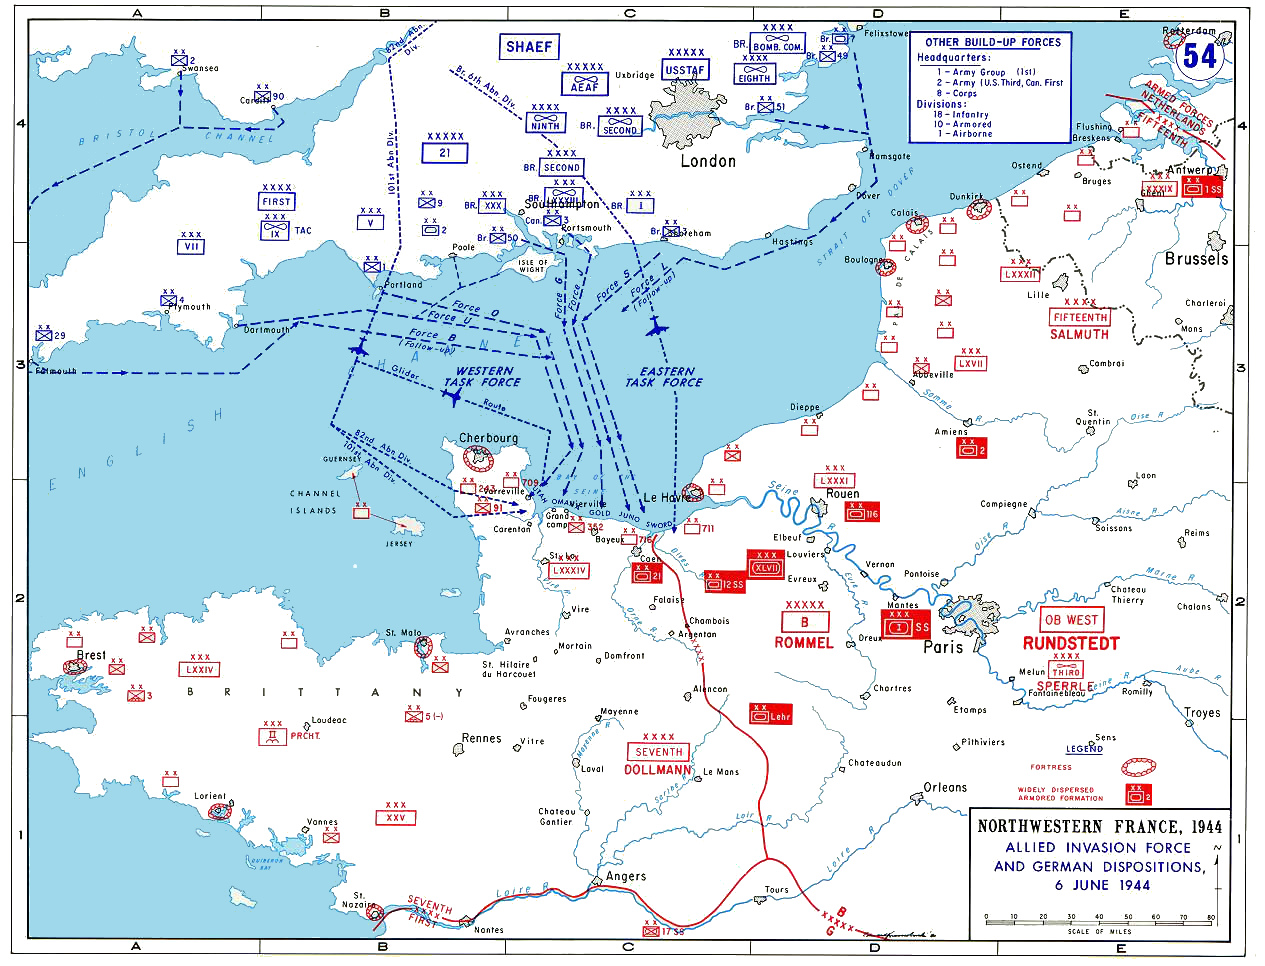 Allied_Invasion_Force_Normandy